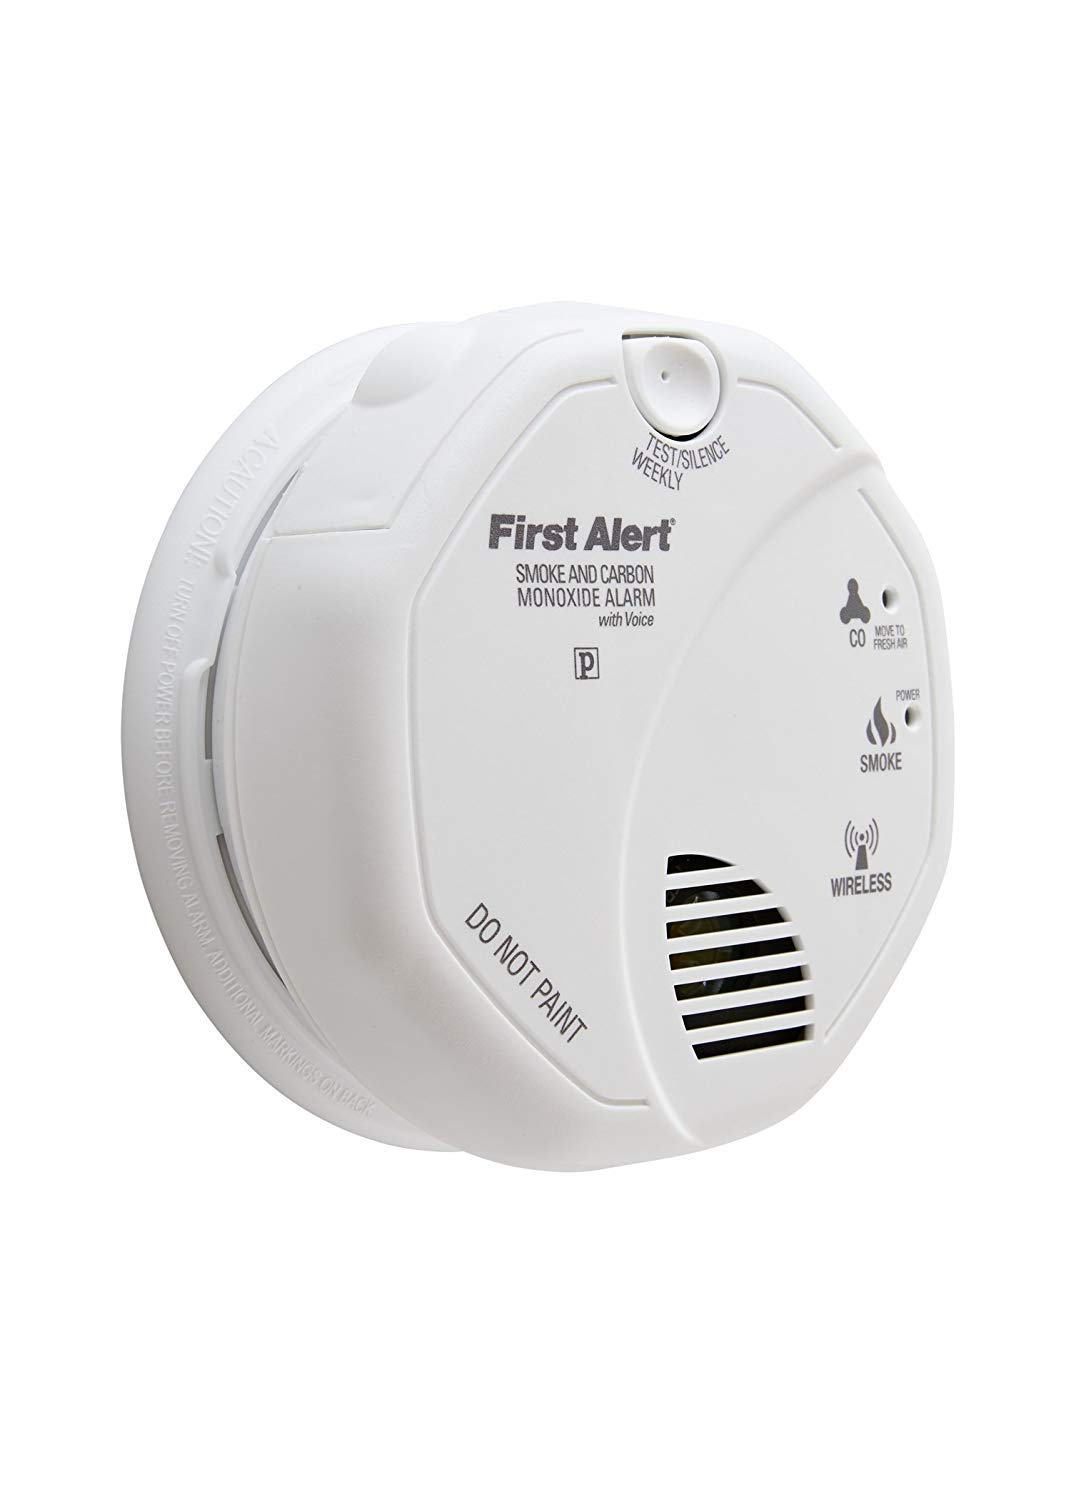 First Alert SCO500B (Series SCO500) ONELINK Battery Operated Combination Smoke and Carbon Monoxide Alarm with Voice Location2-Pack